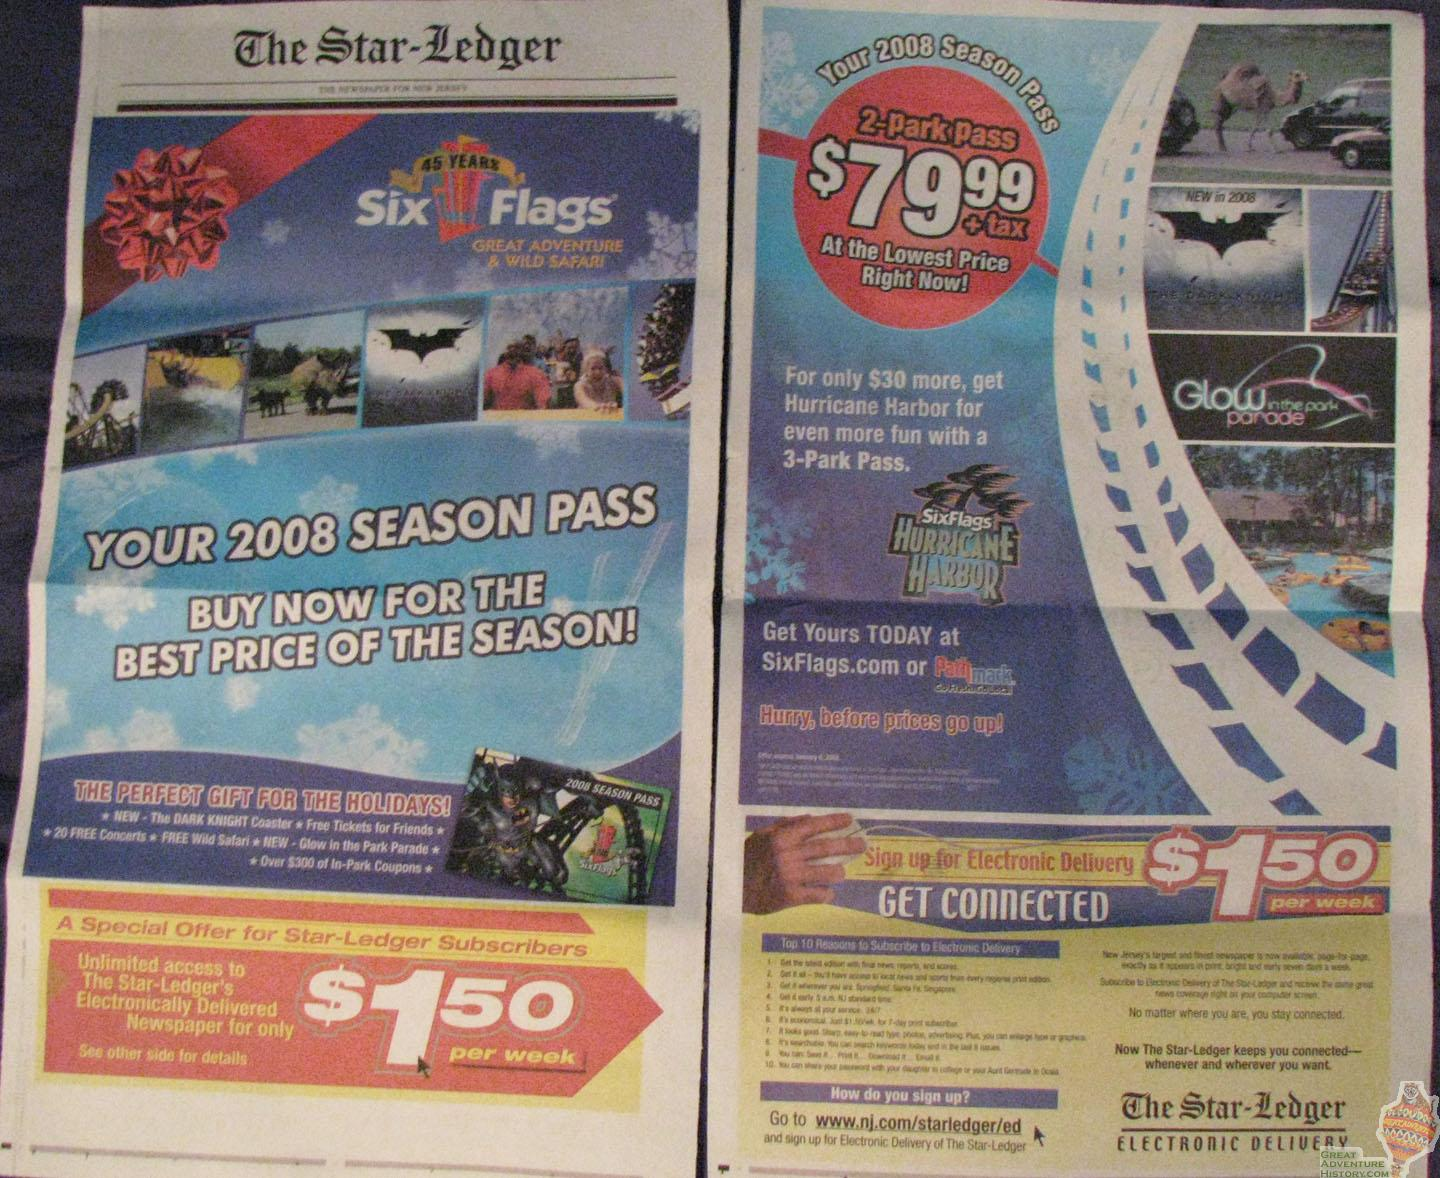 Star Ledger Ad - Dec 12, 2007